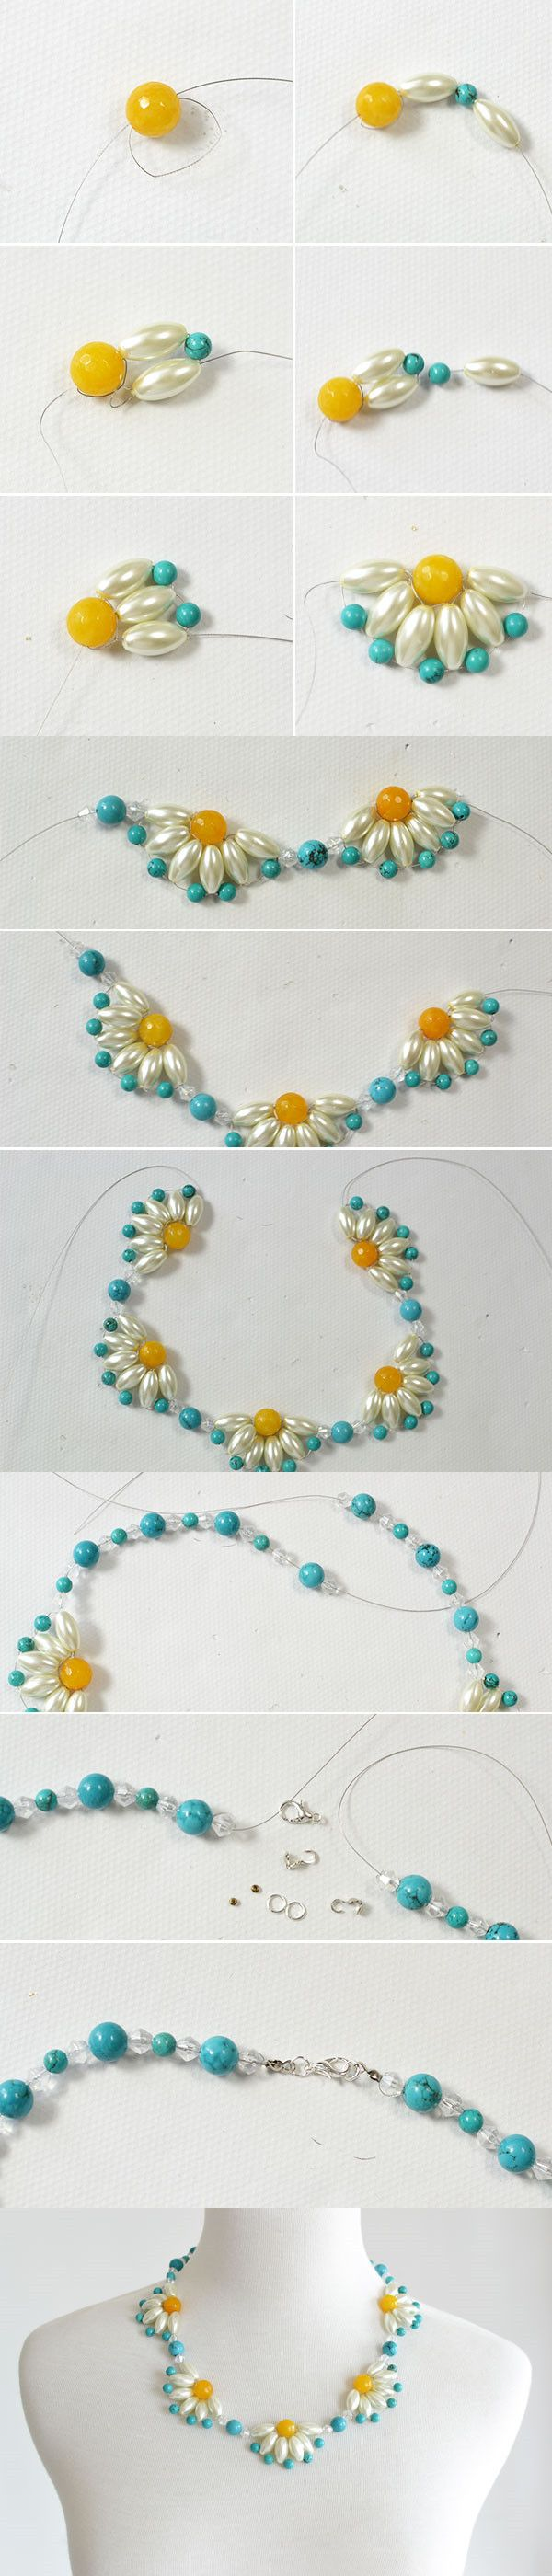 Tutorial - How to DIY a Flower Choker Necklace Step by Step from LC.Pandahall.com #Seed #Bead #Tutorials